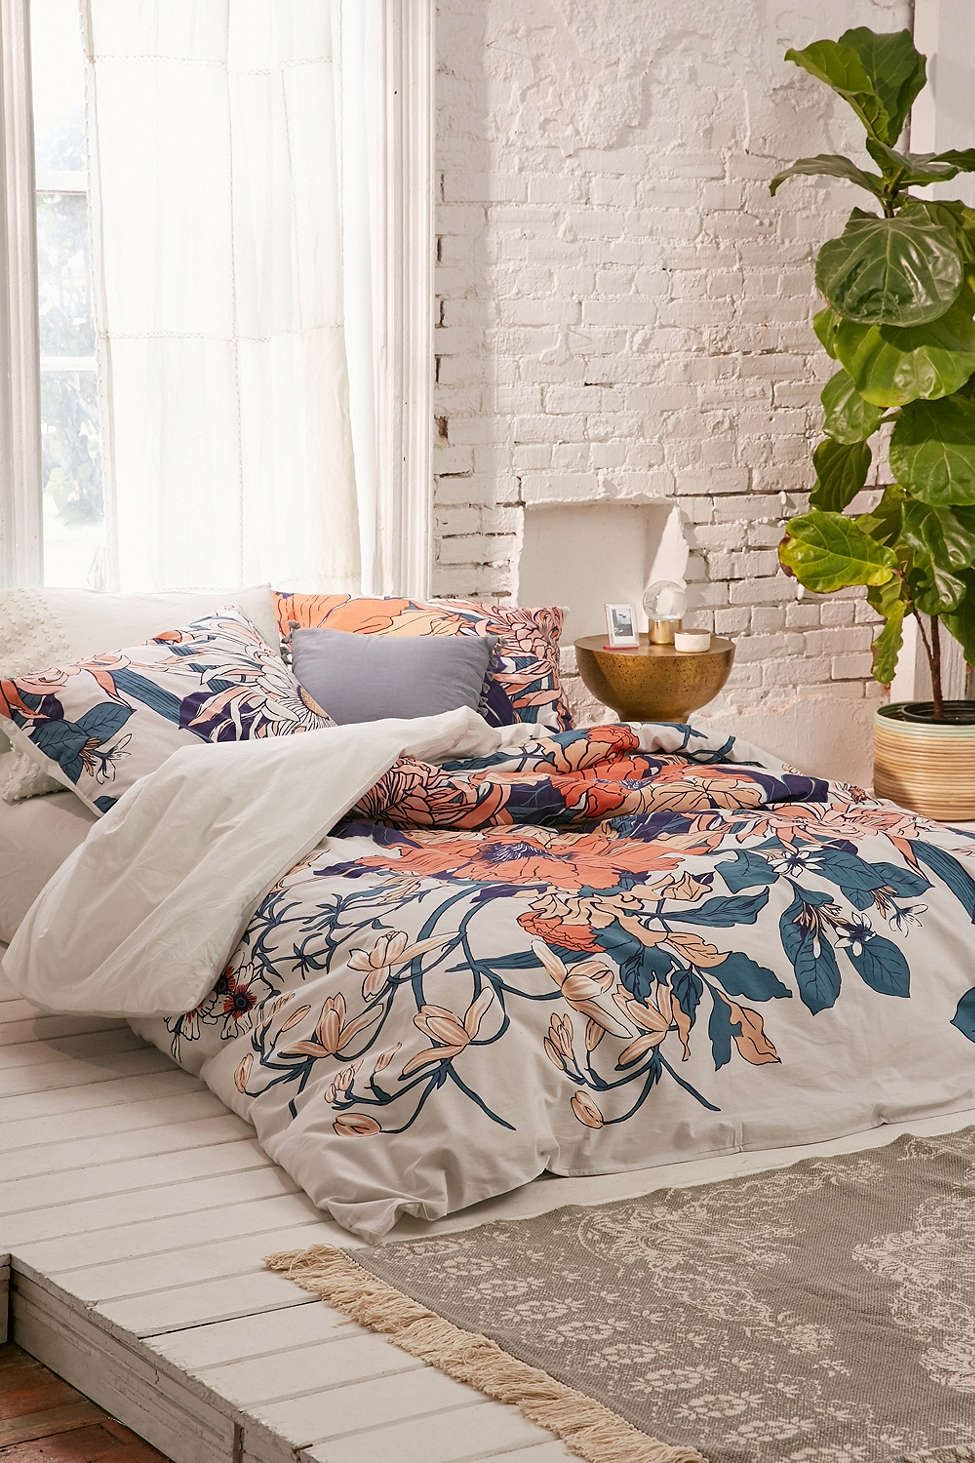 Botanical Scarf Duvet Cover. Urban Outfitters BedroomUrban ...